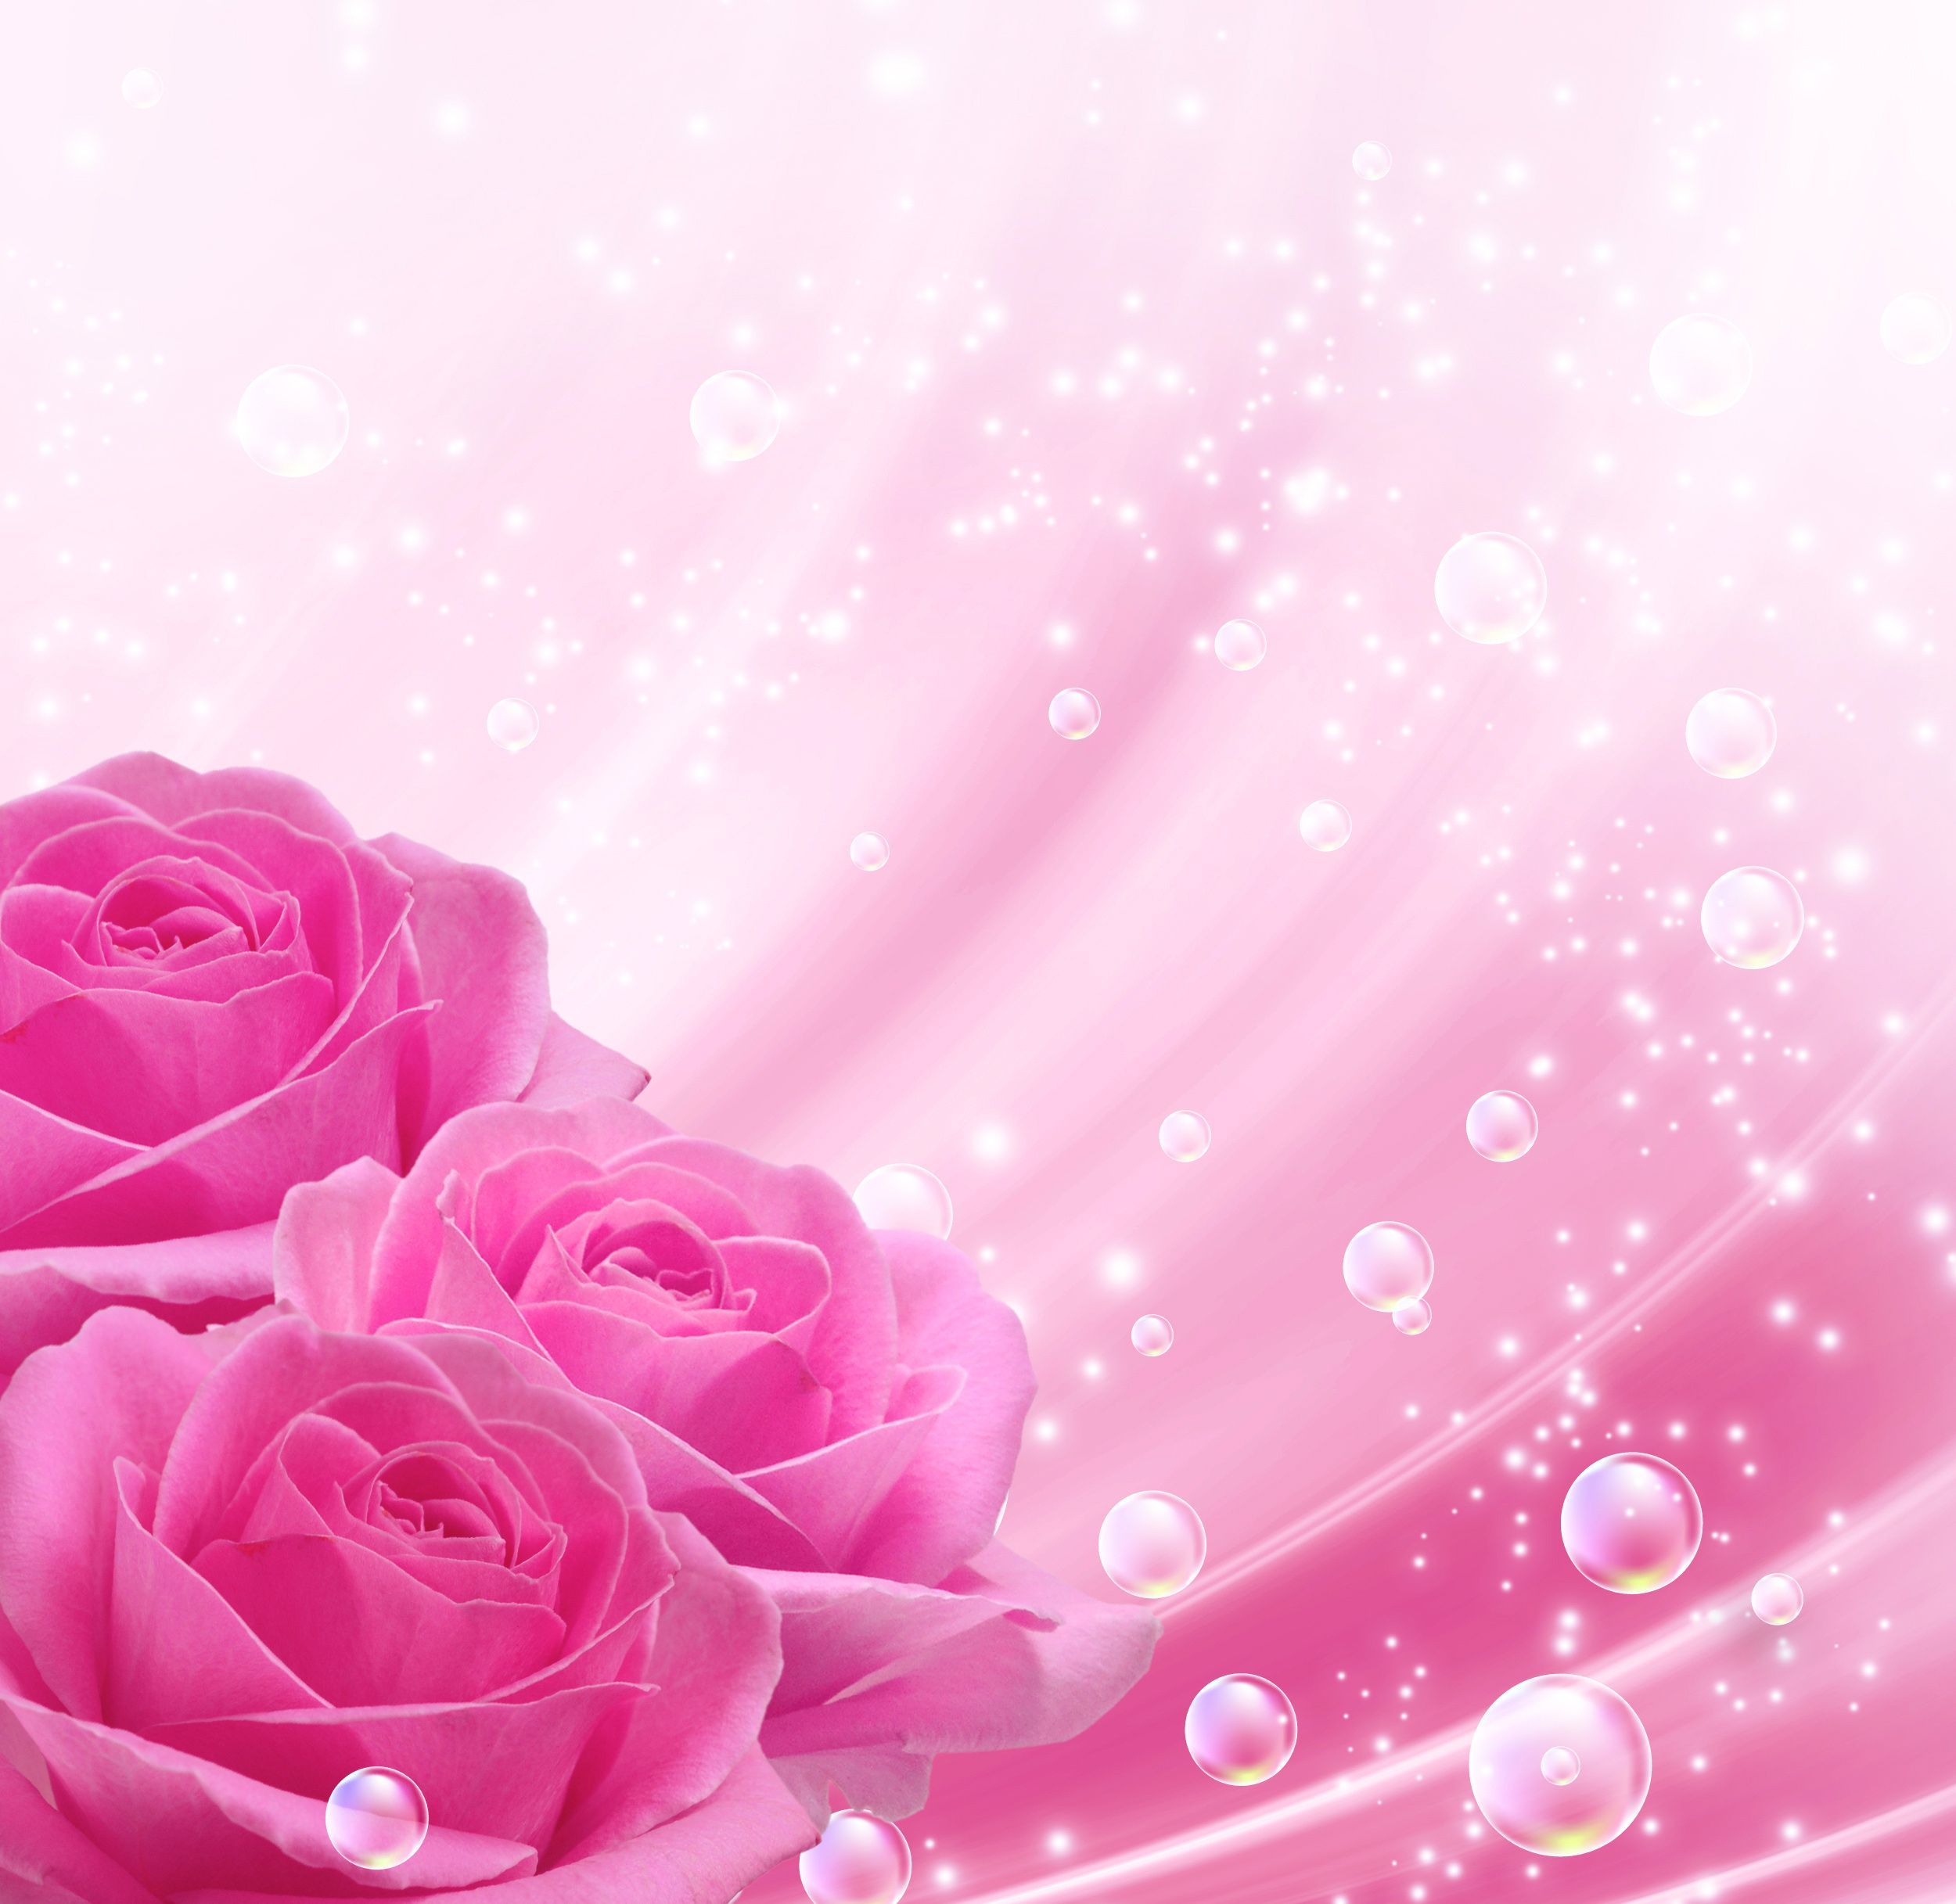 Pink Background With Pink Roses Gallery Yopriceville High Quality Images And Transparent Pink Background Images Pink Wallpaper Backgrounds Pink Background